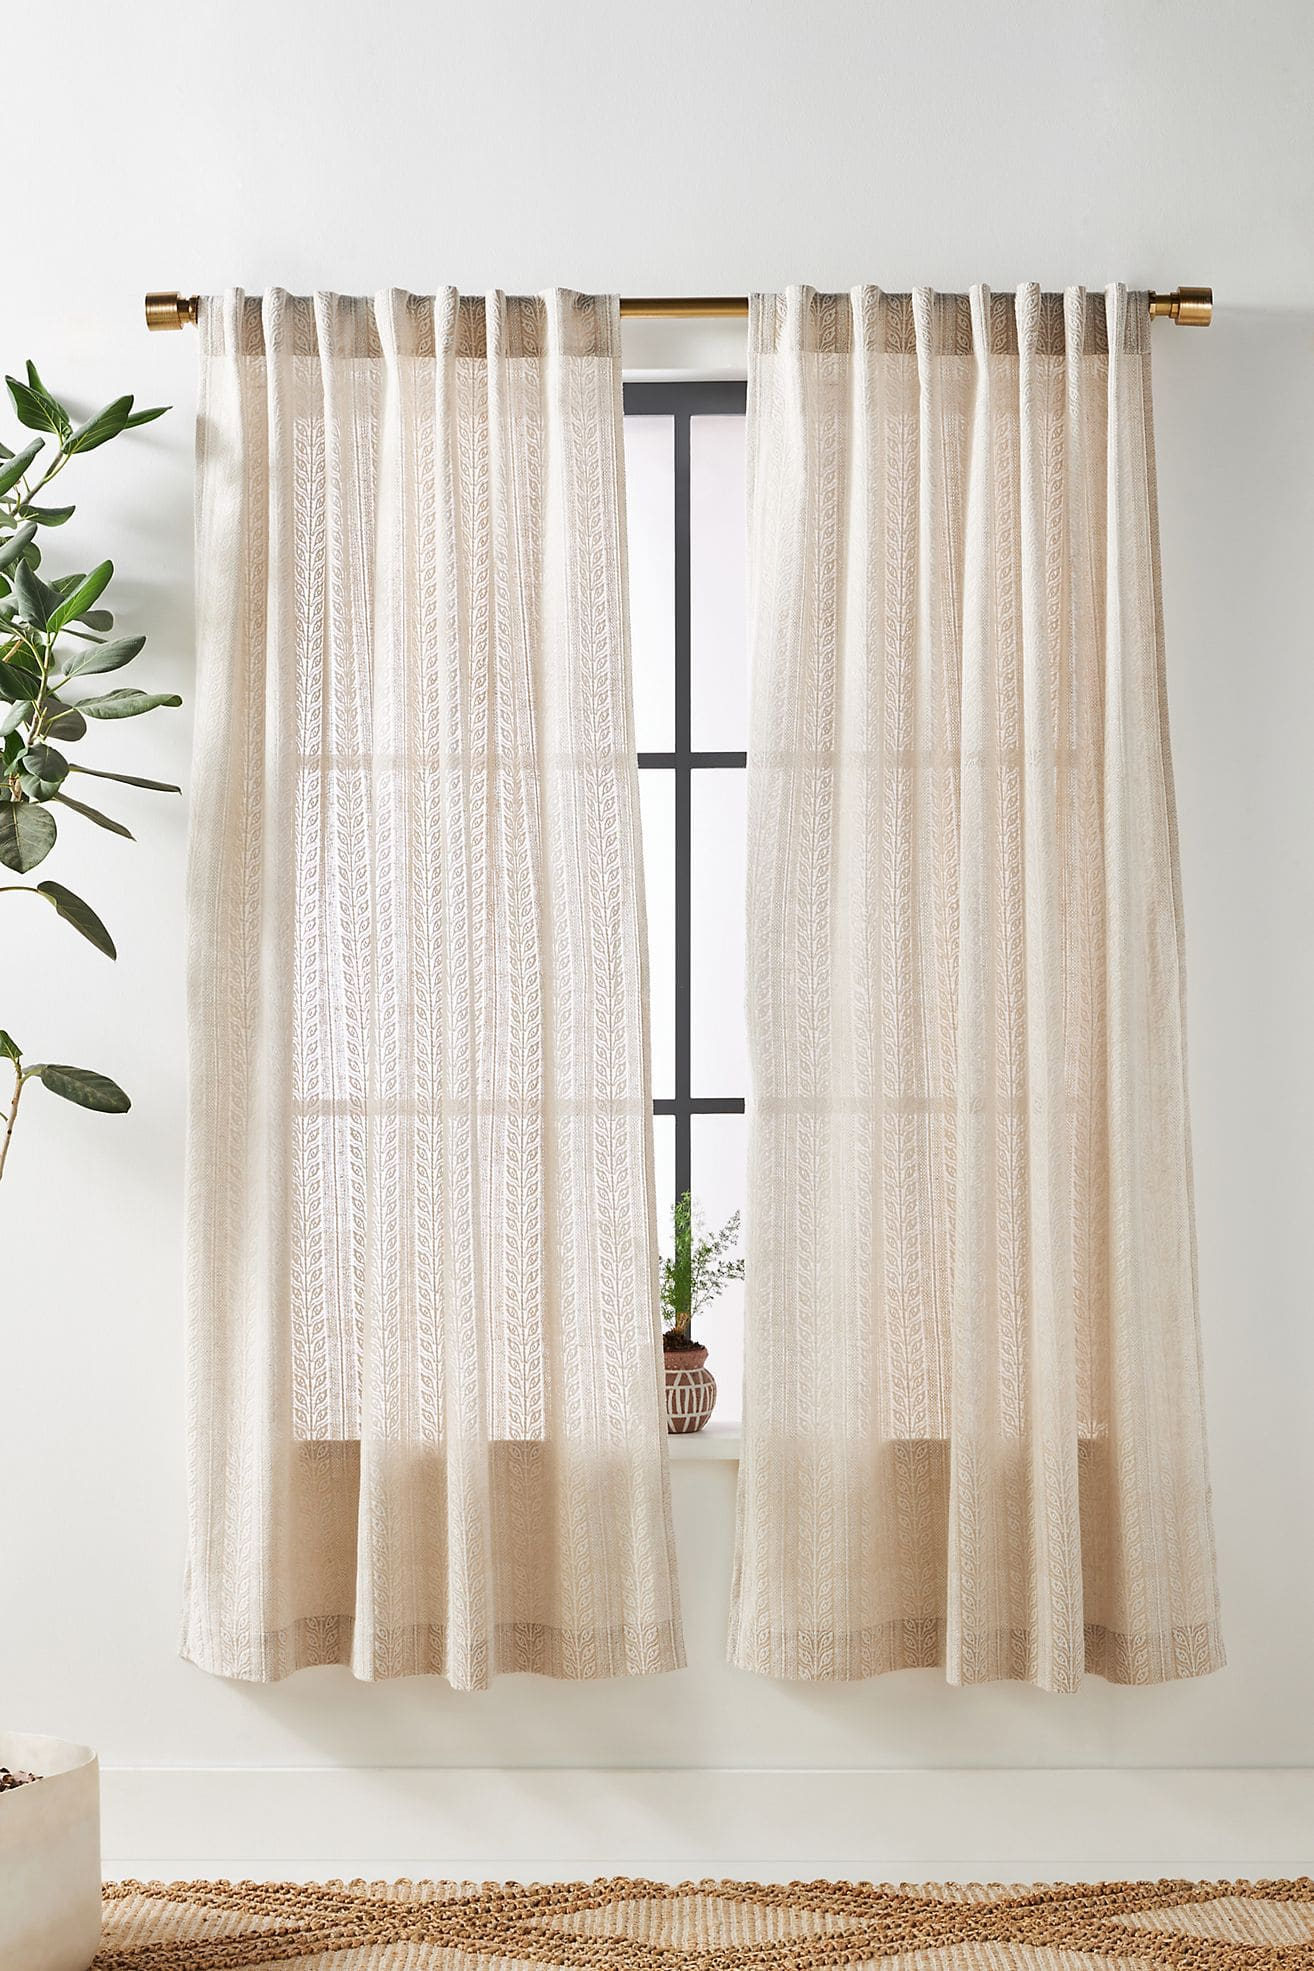 Embroidered Cantrelle Curtains